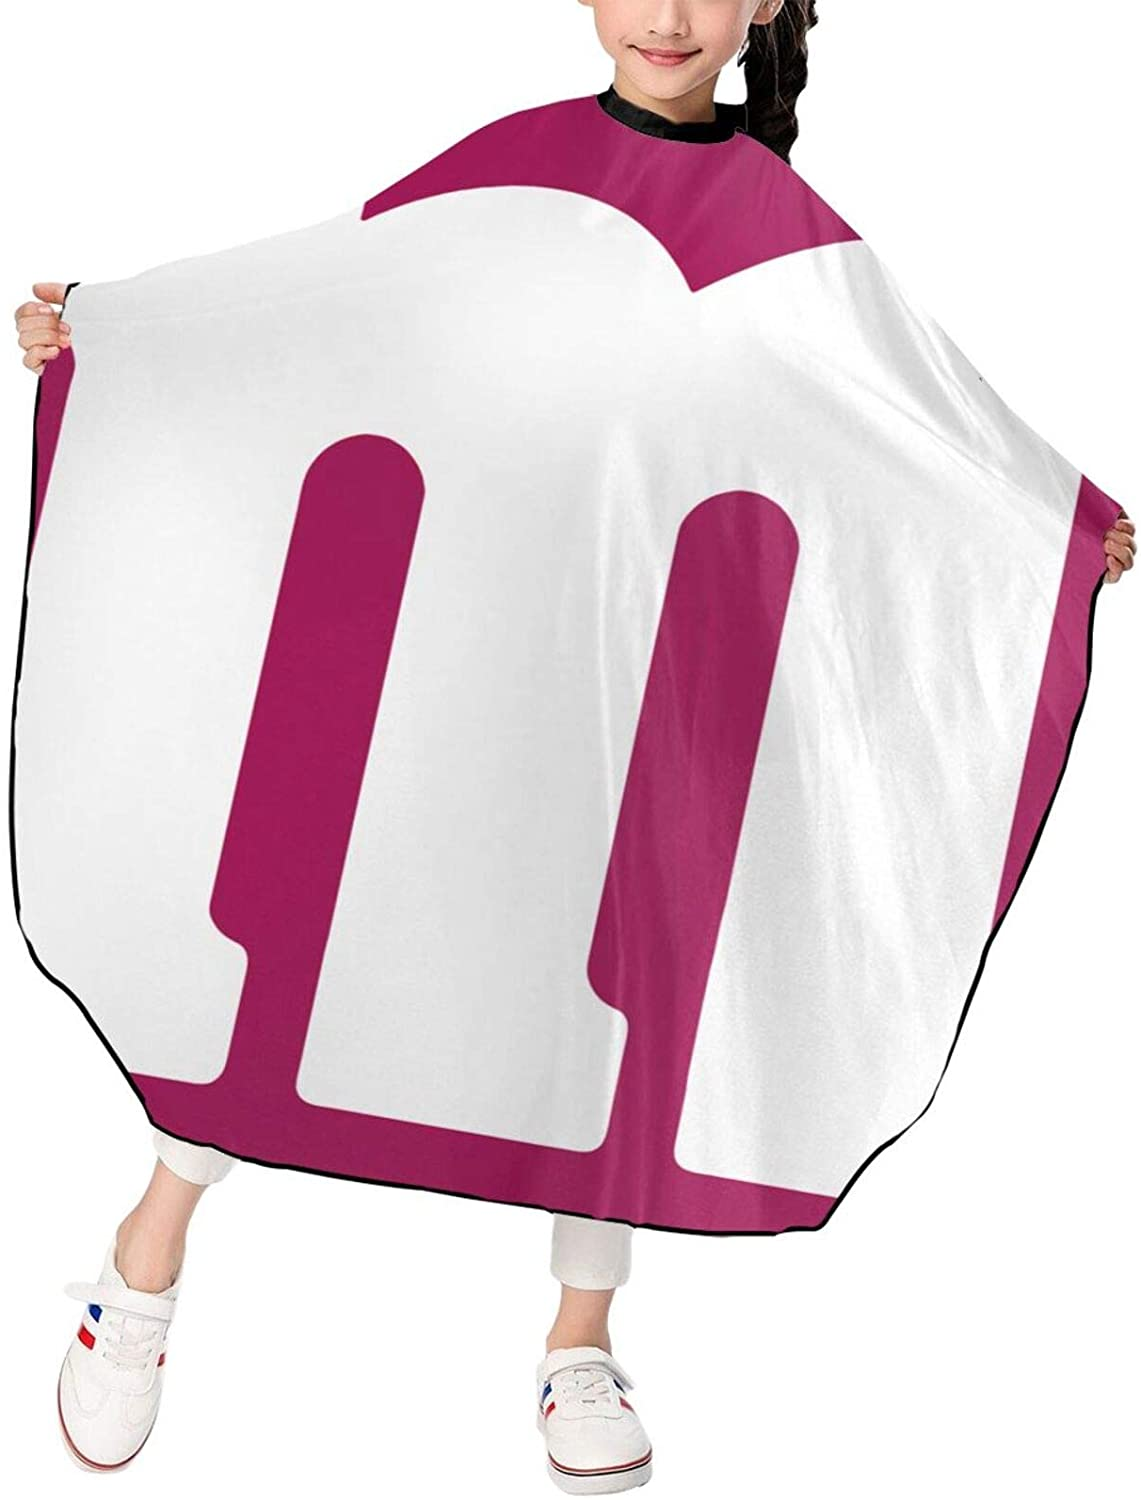 Elizadaisy M&M Professional Salon Hair Styling Cloth Apron Cover Gown Barber Cutting Cape Waterproof Adjustable Snap for Hairstylists